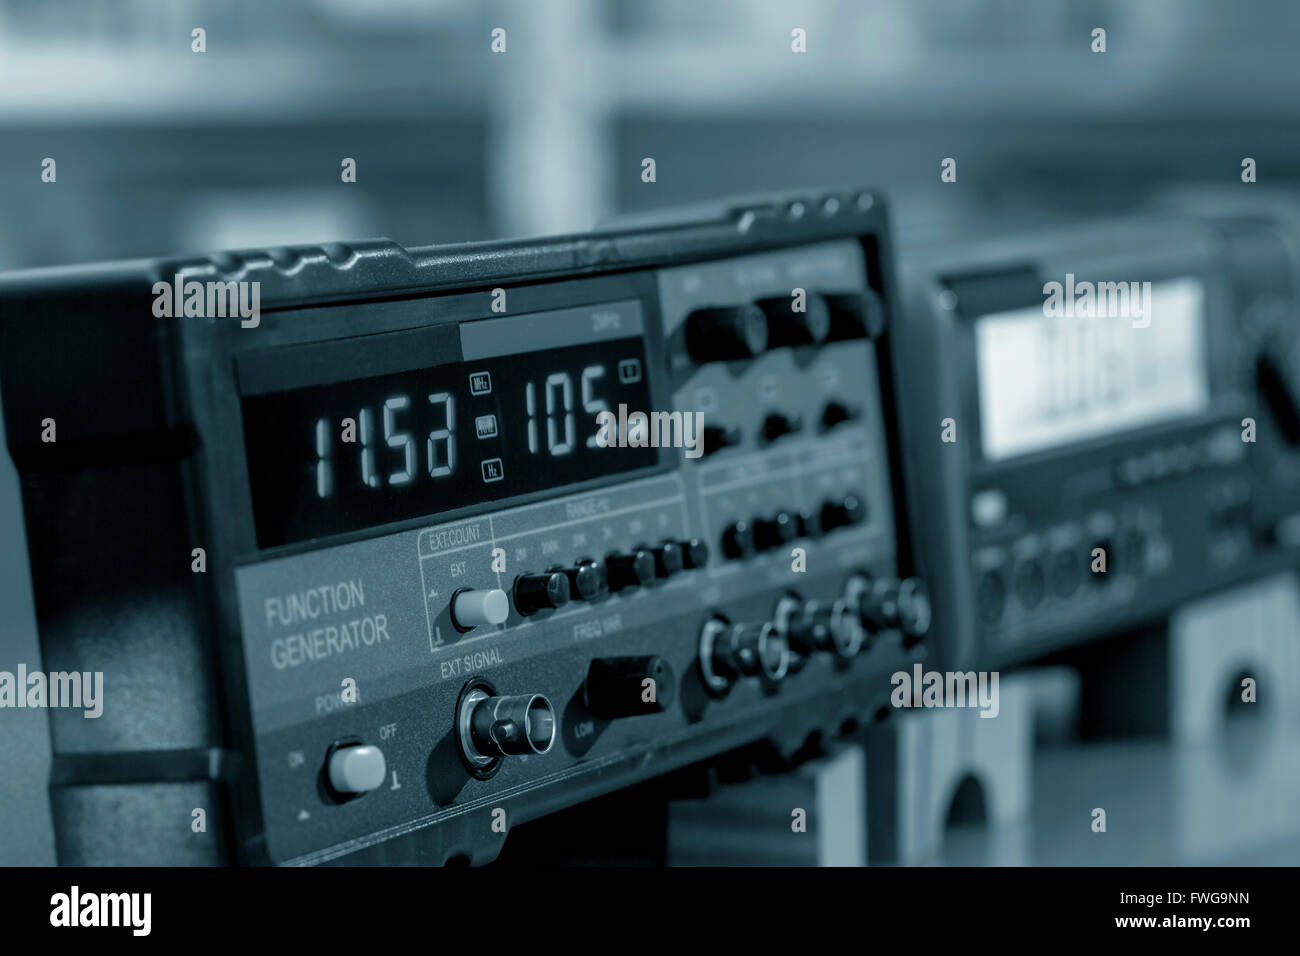 Digital display on an electronic machine. - Stock Image